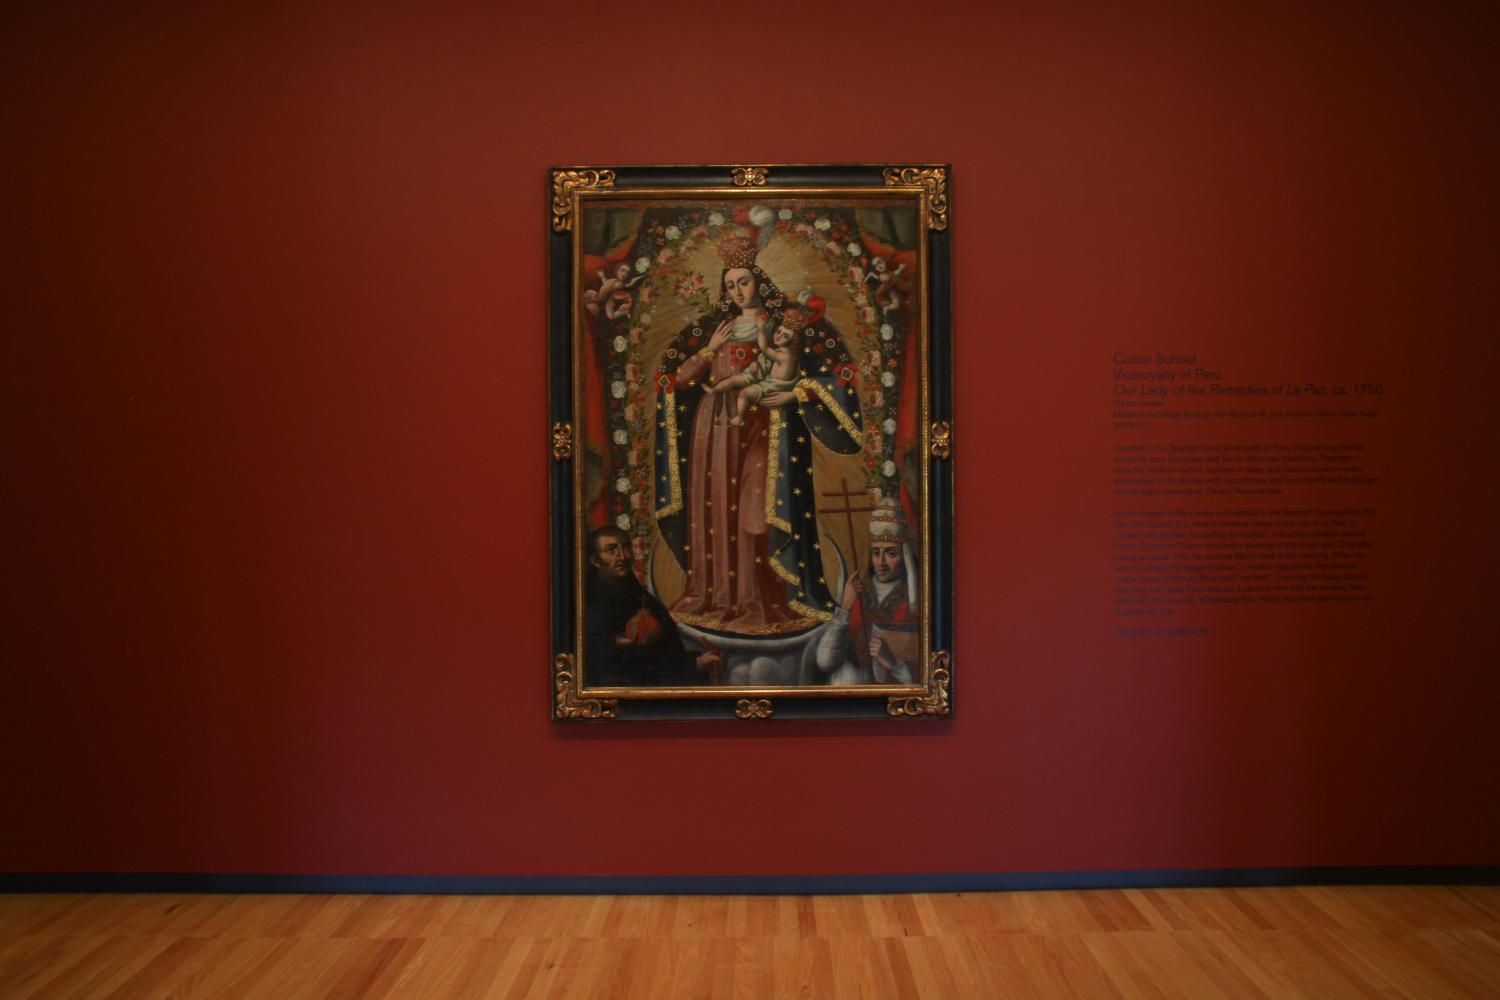 Cuzco School (active Cuzco, Peru, 16th–18th century), Our Lady of the Remedies of La Paz, ca. 1750. Welcome Wall installation at Krannert Art Museum, 2018. Photo by Jessica L. Hung.